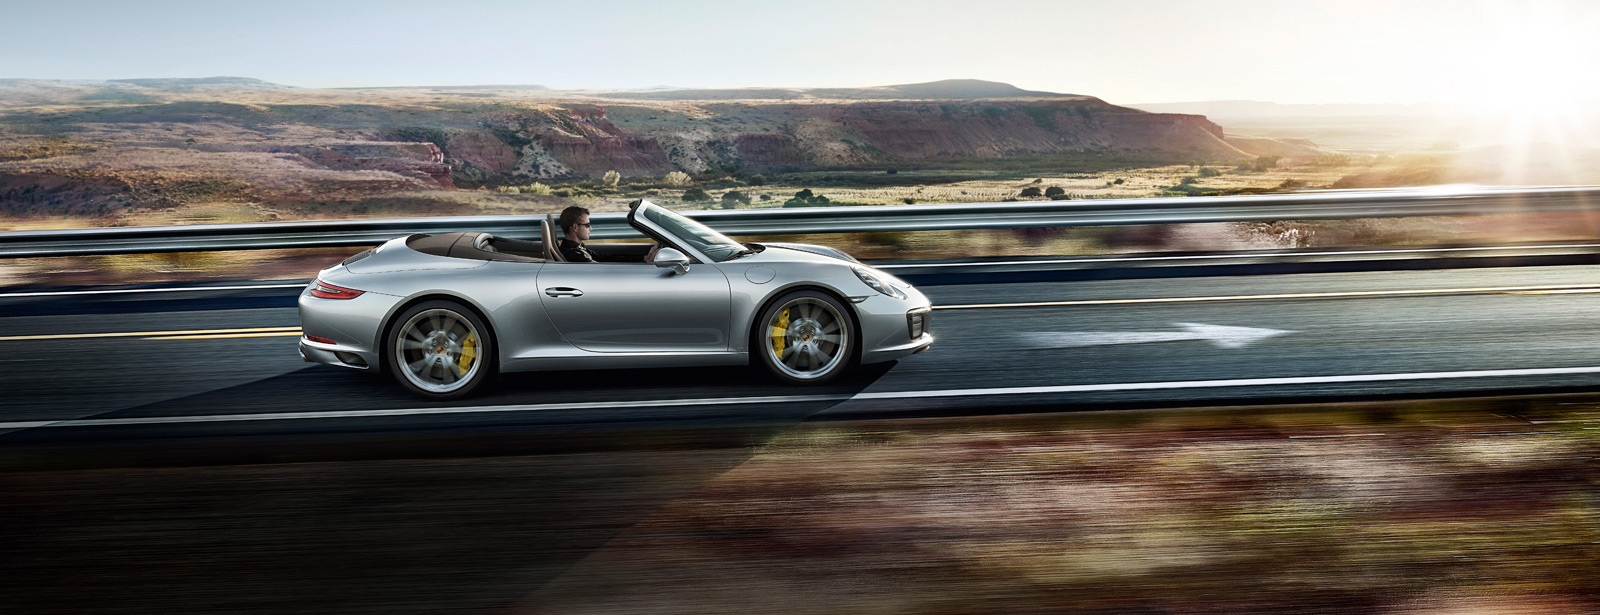 Porsche The new 911 Carrera S Cabriolet